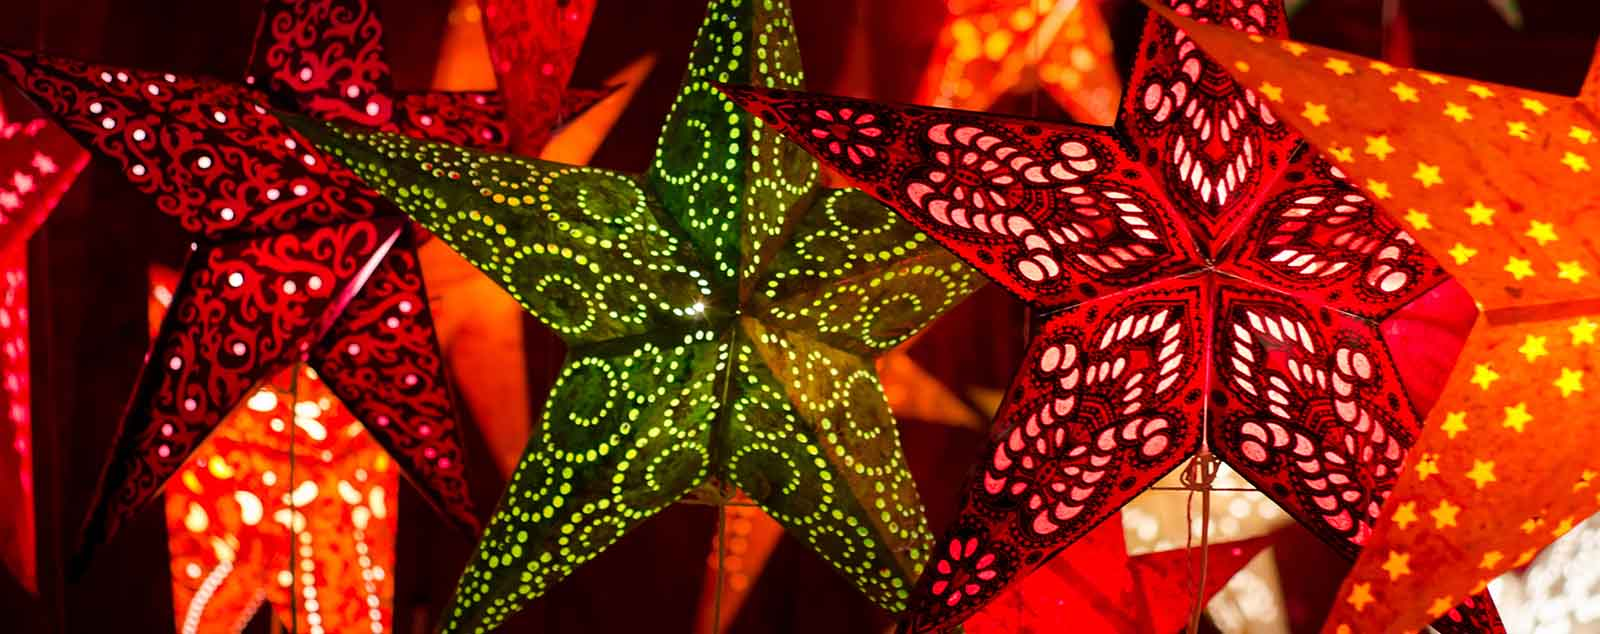 Green and red illuminated Christmas star decorations